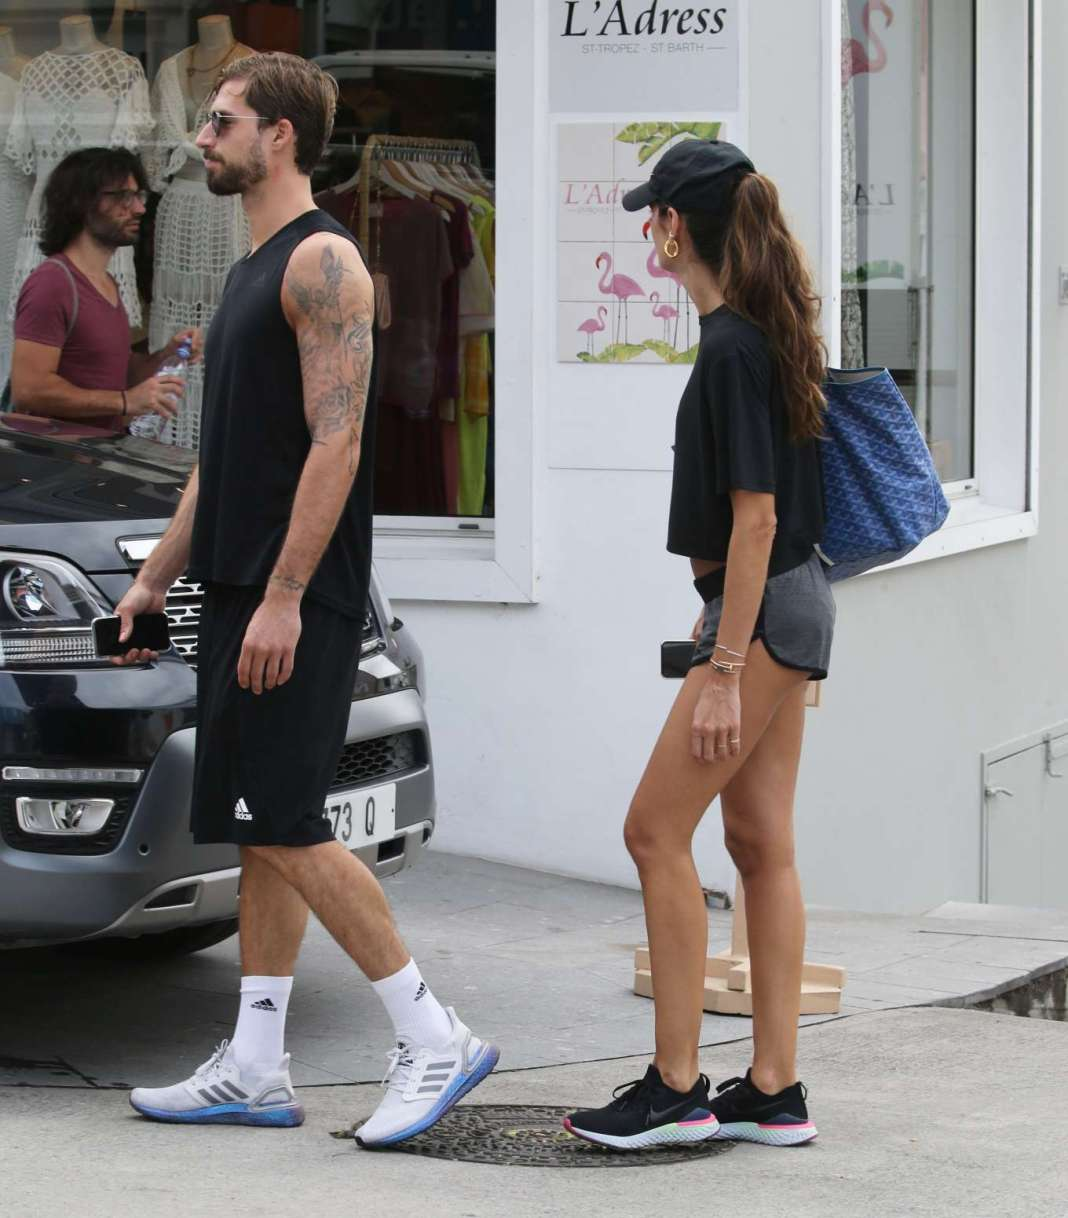 Izabel Goulart – Wearing tight shorts while shopping in St Barth